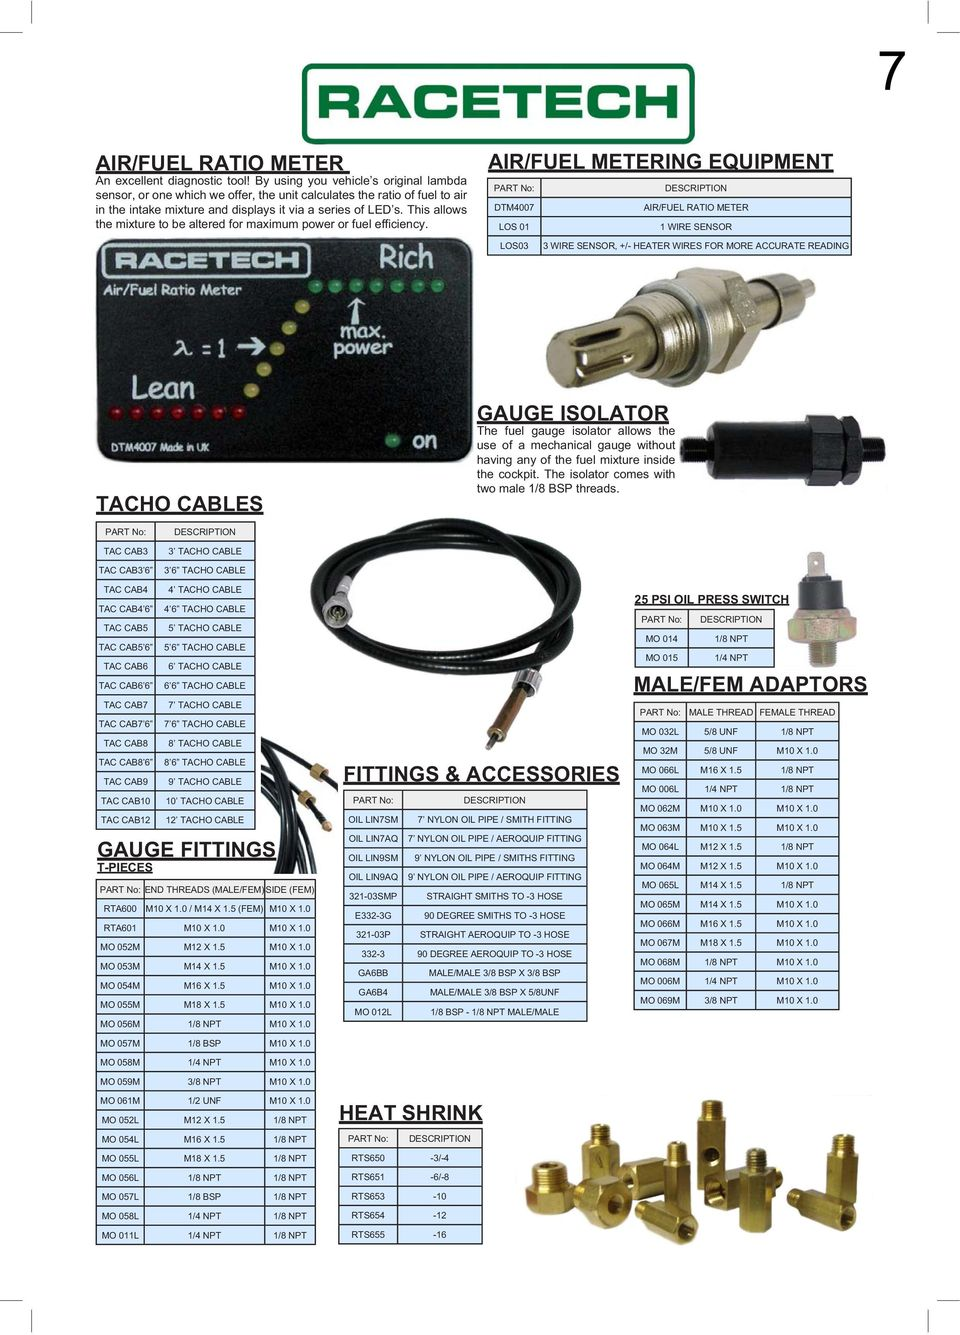 Motorsports Katalog E Tech Racing Tlf Pdf Accessories And Parts Wiring Wire Jacketed 12 Gauge 2 Deka This Allows The Mixture To Be Altered For Maximum Power Or Fuel Efficiency